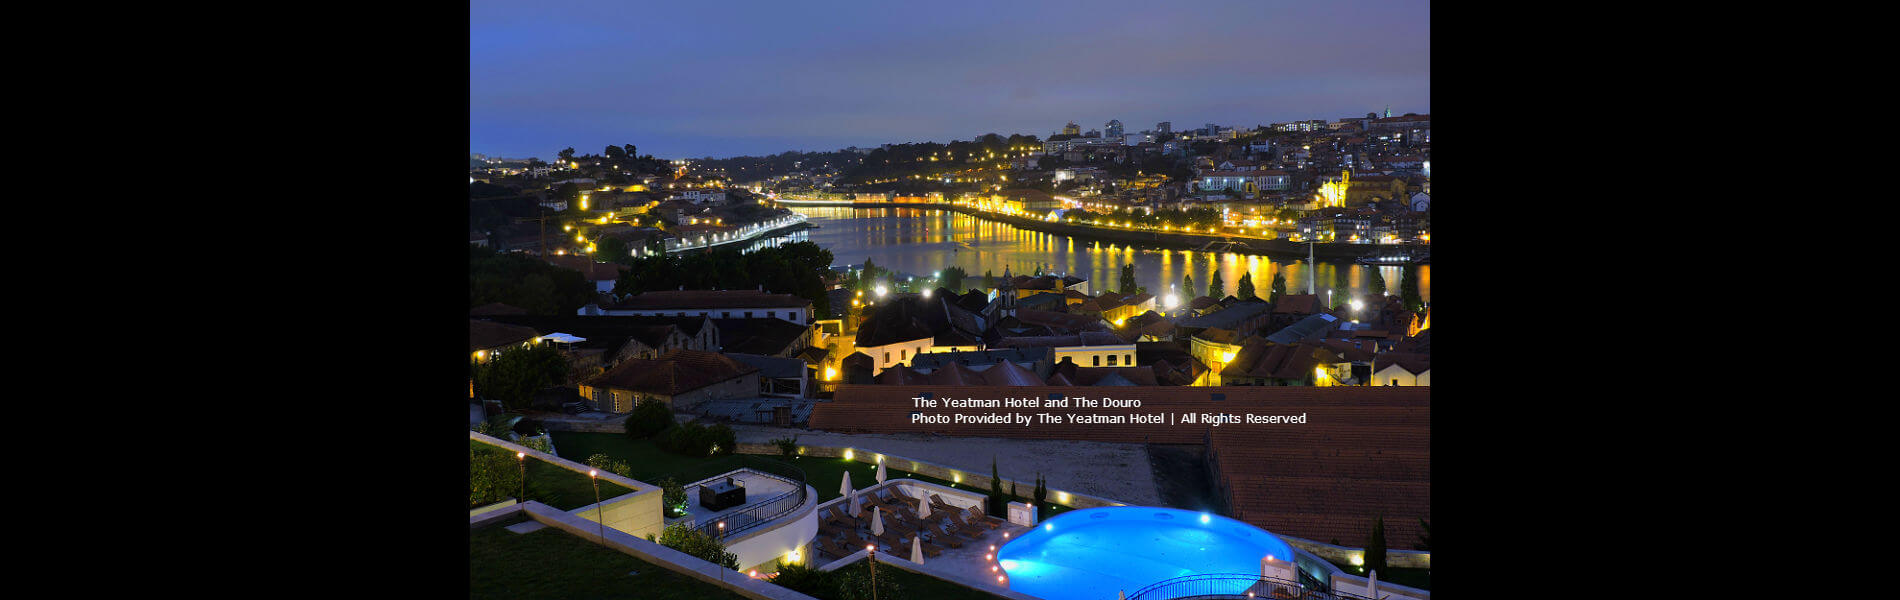 Blend-All-About-Wine-The Yeatman Hotel-Sunset-Slider